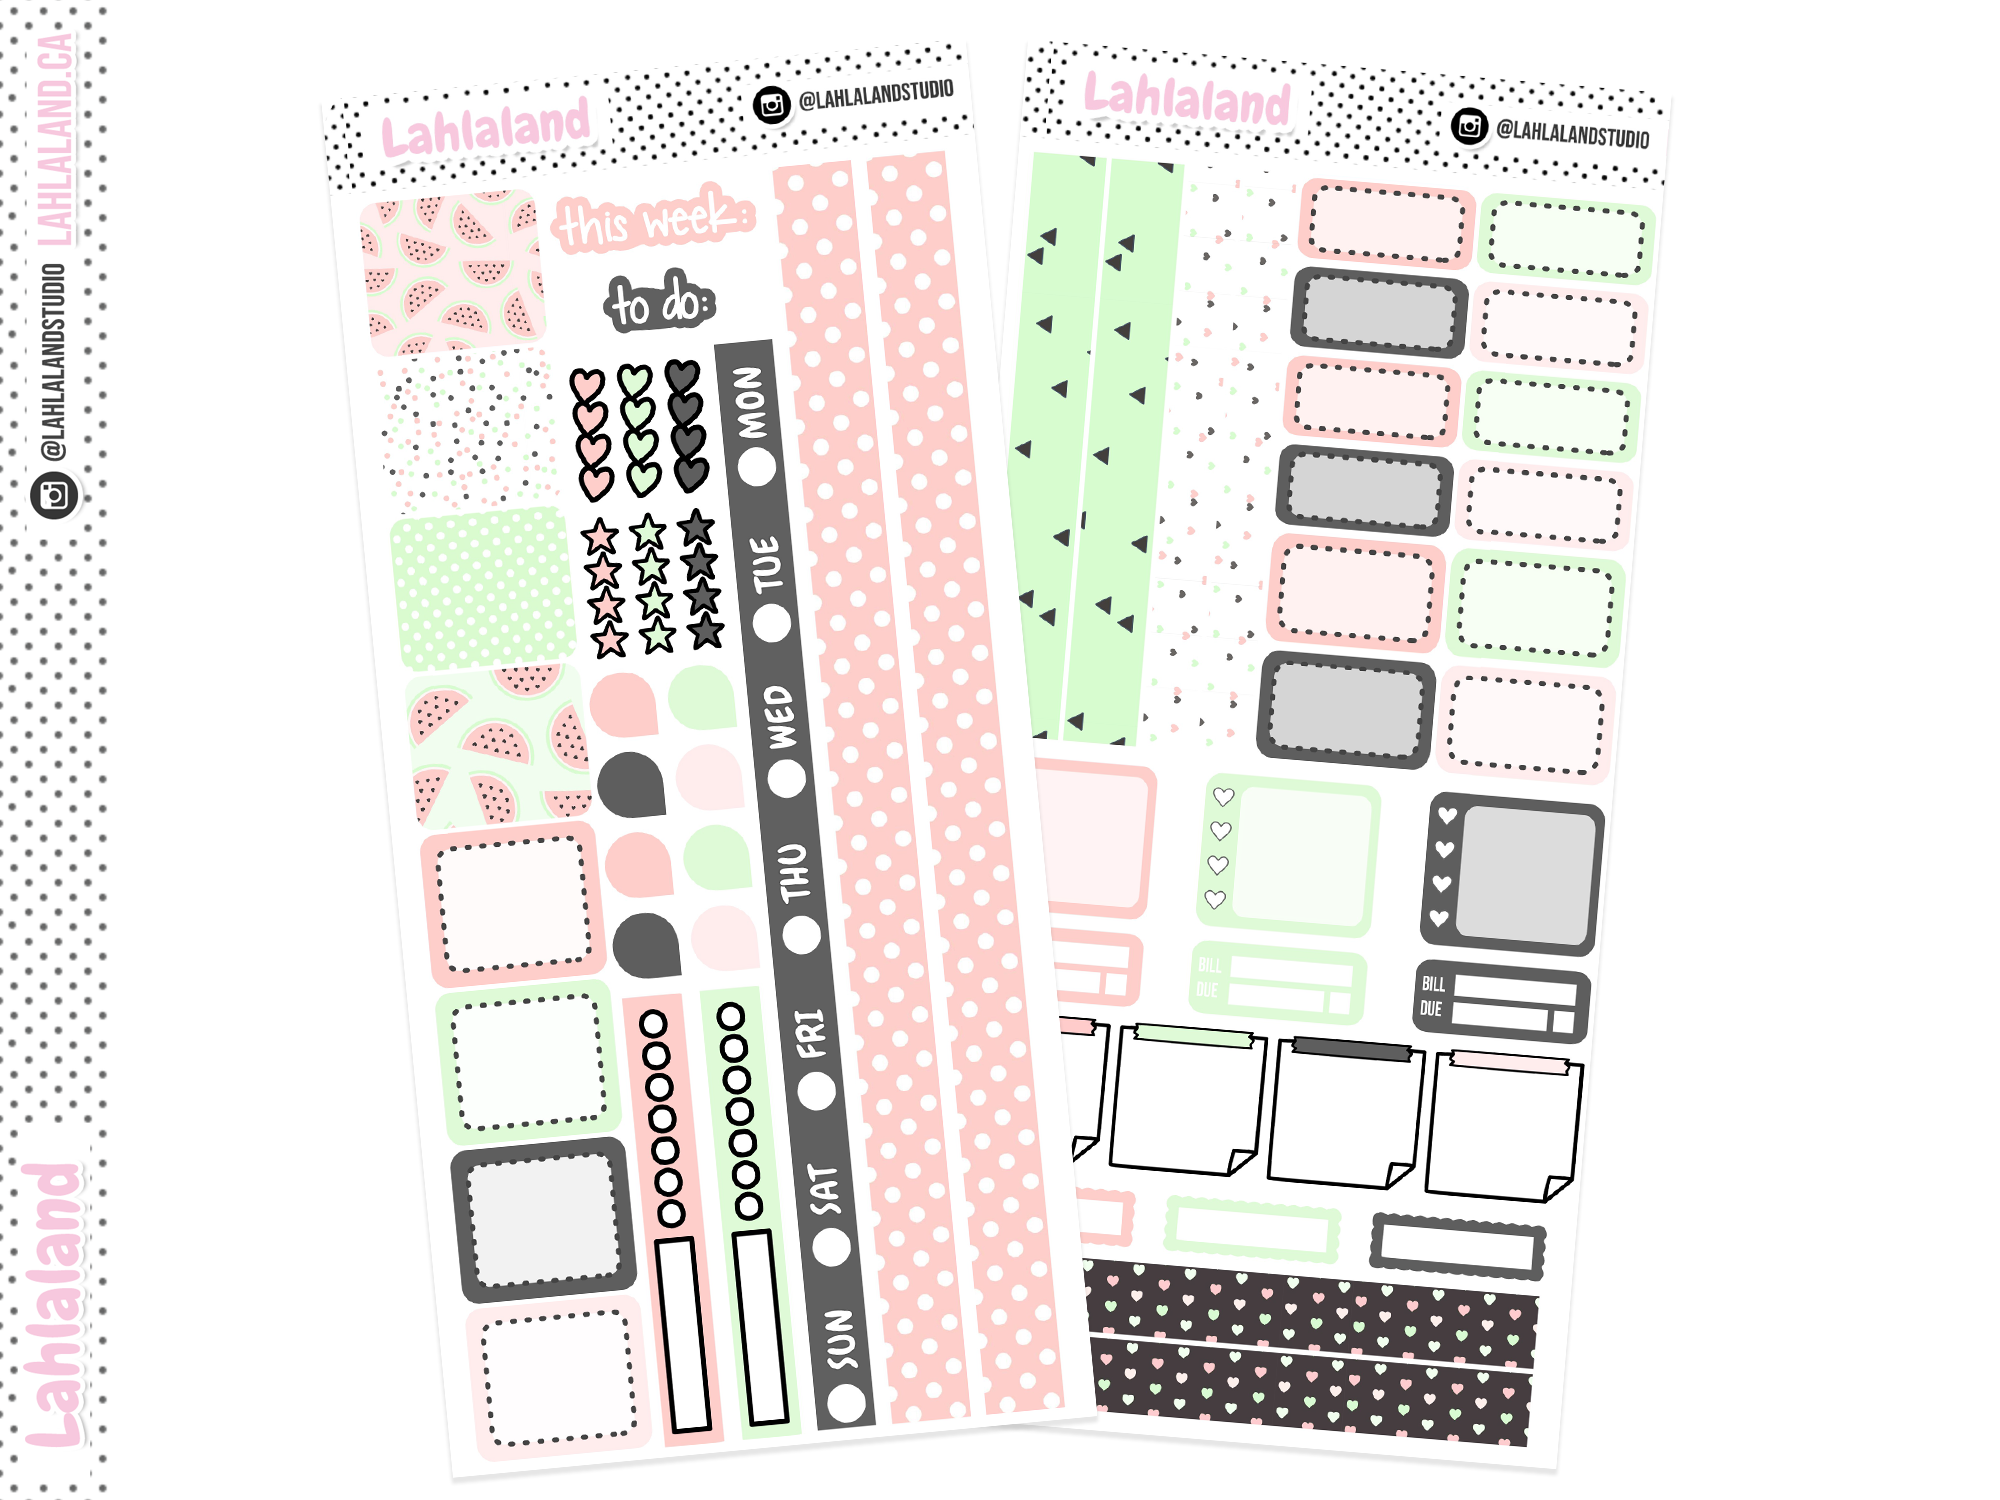 Hobonichi Weeks - Watermelon Chic Weekly Kit